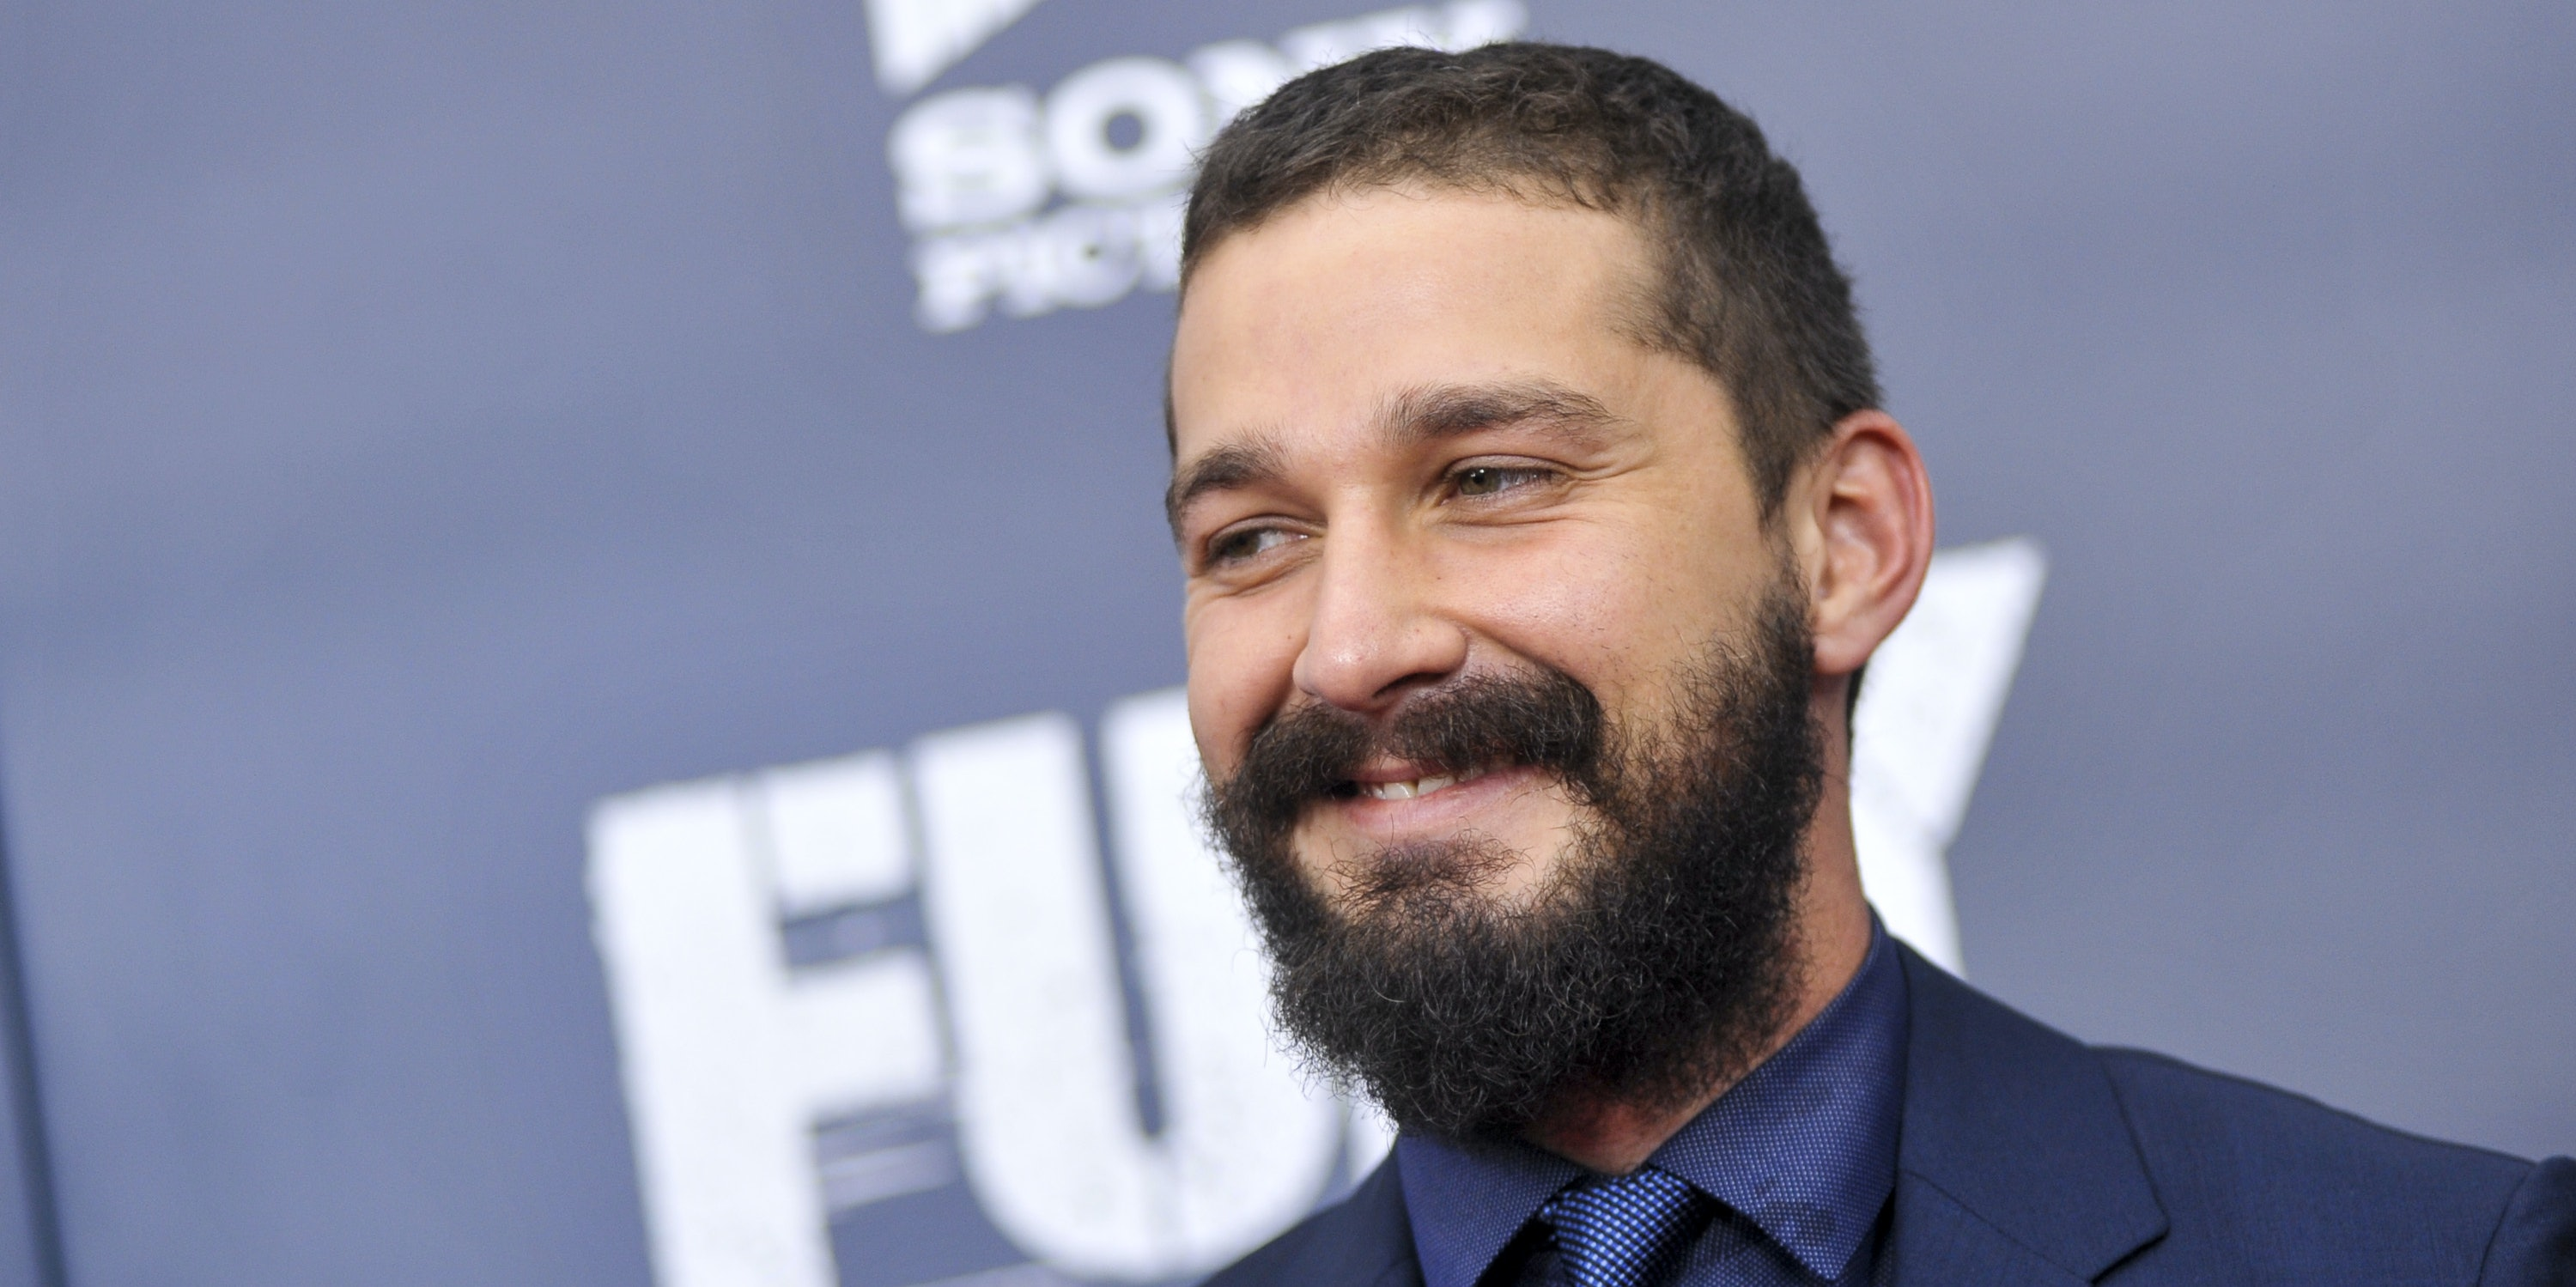 Shia LaBeouf's art exhibit, HE WILL NOT DIVIDE US, was shut down by the Museum of the Moving Image.